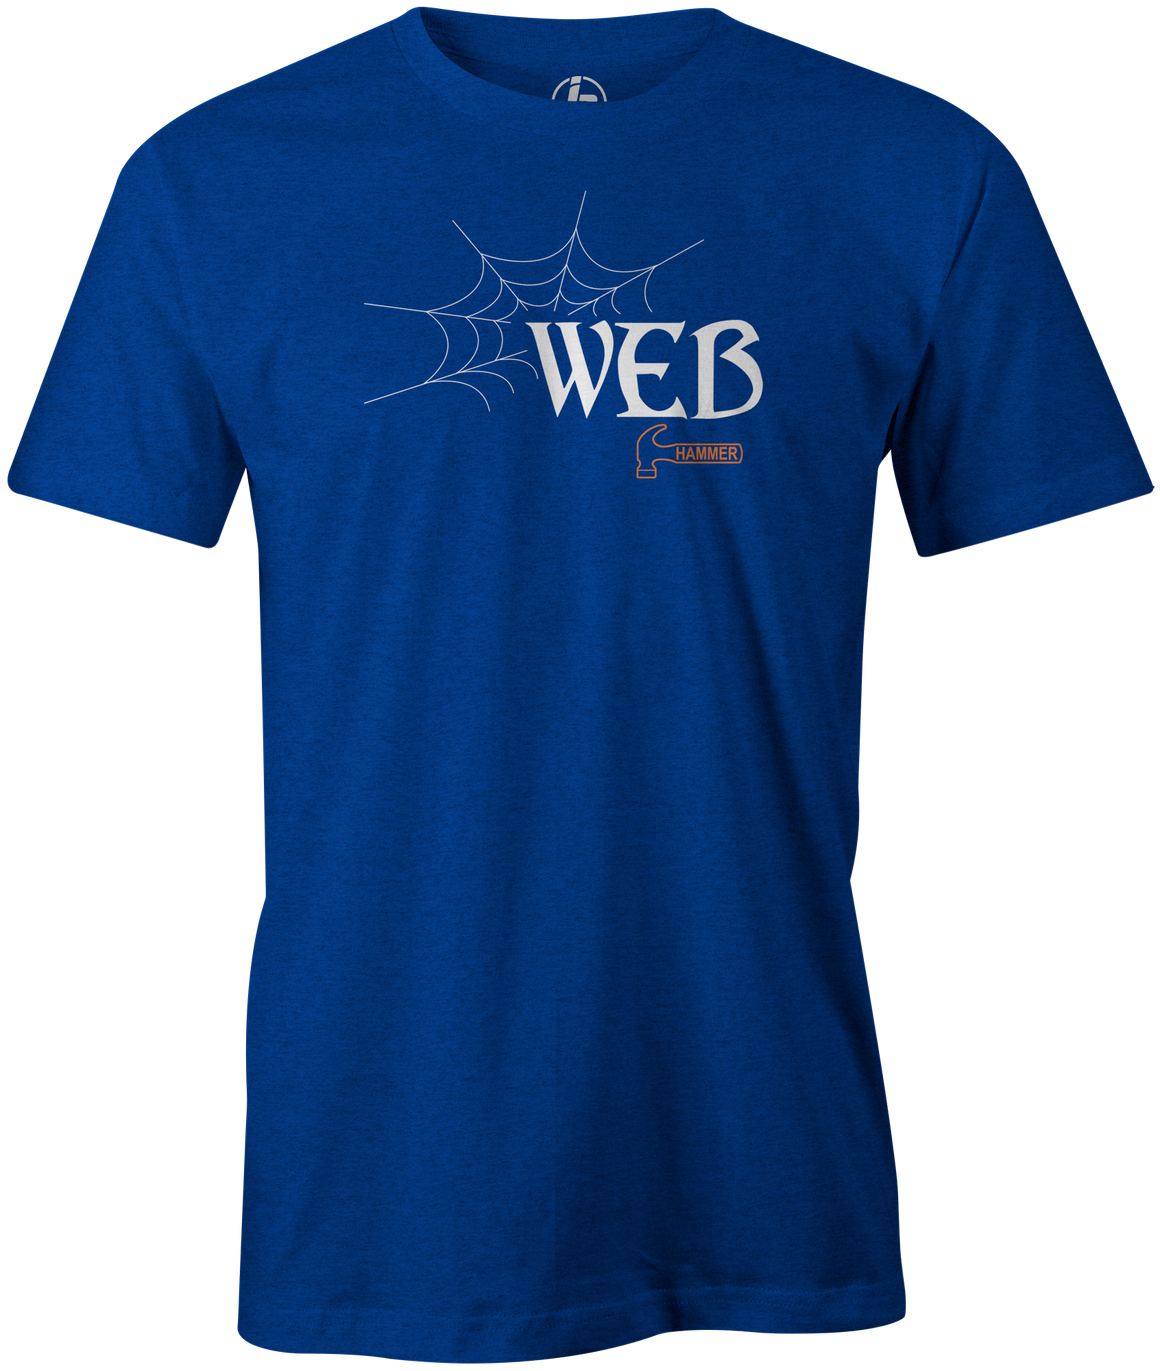 Hammer Web Men's T-shirt, Charcoal, Bowling, Bowling Ball, tshirt, tee, tee-shirt, tee shirt, web tour, black widow, bill o'neil, shannon o'keefe